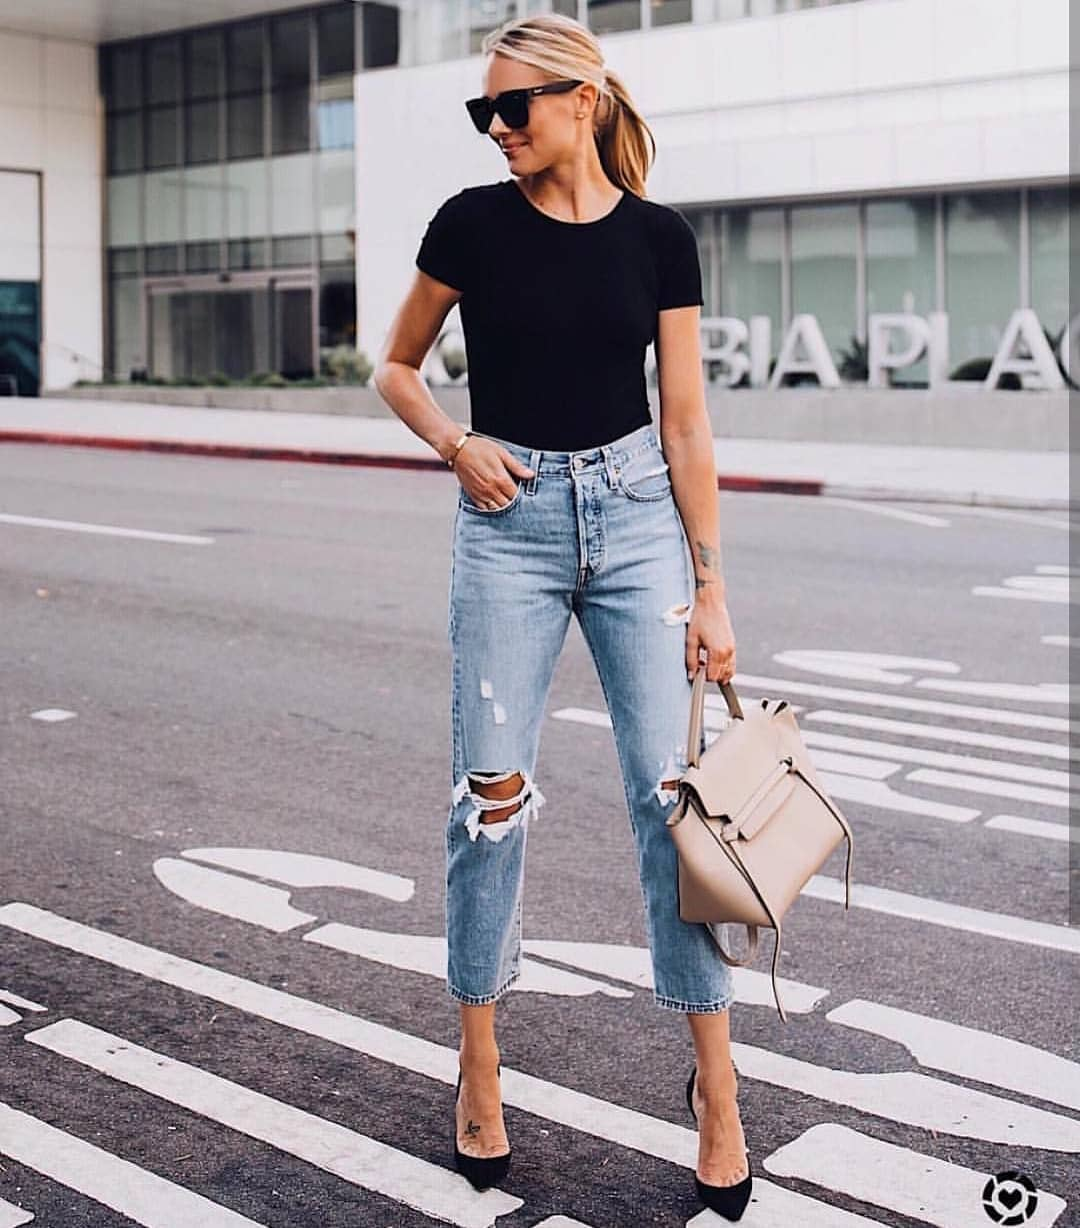 Black Tee And Ripped Wash Blue Jeans With Black Heels: Summer Basic Combo 2021